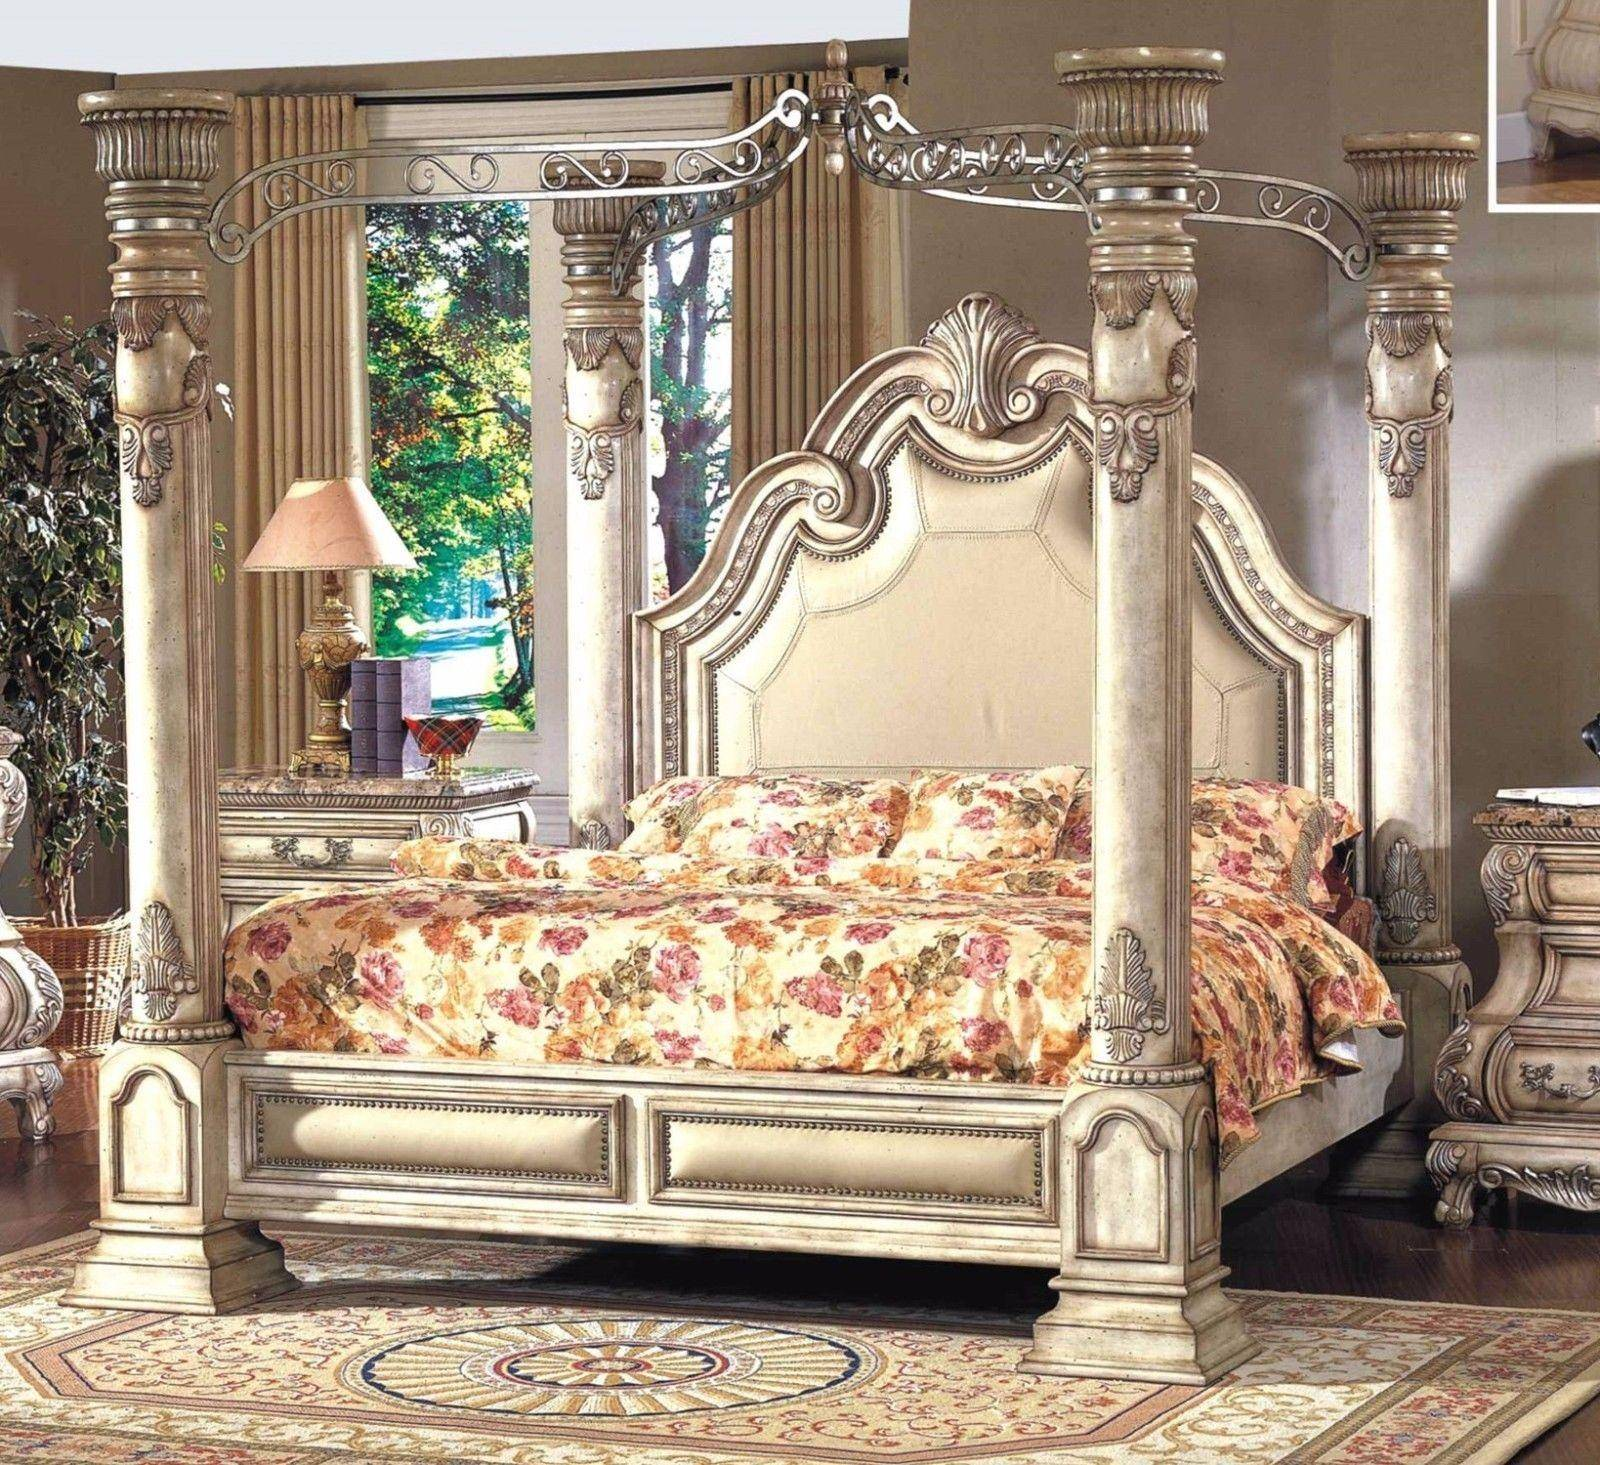 Mcferran B9097 Ek Monaco Blanc Luxury King Size Canopy Bedroom Set